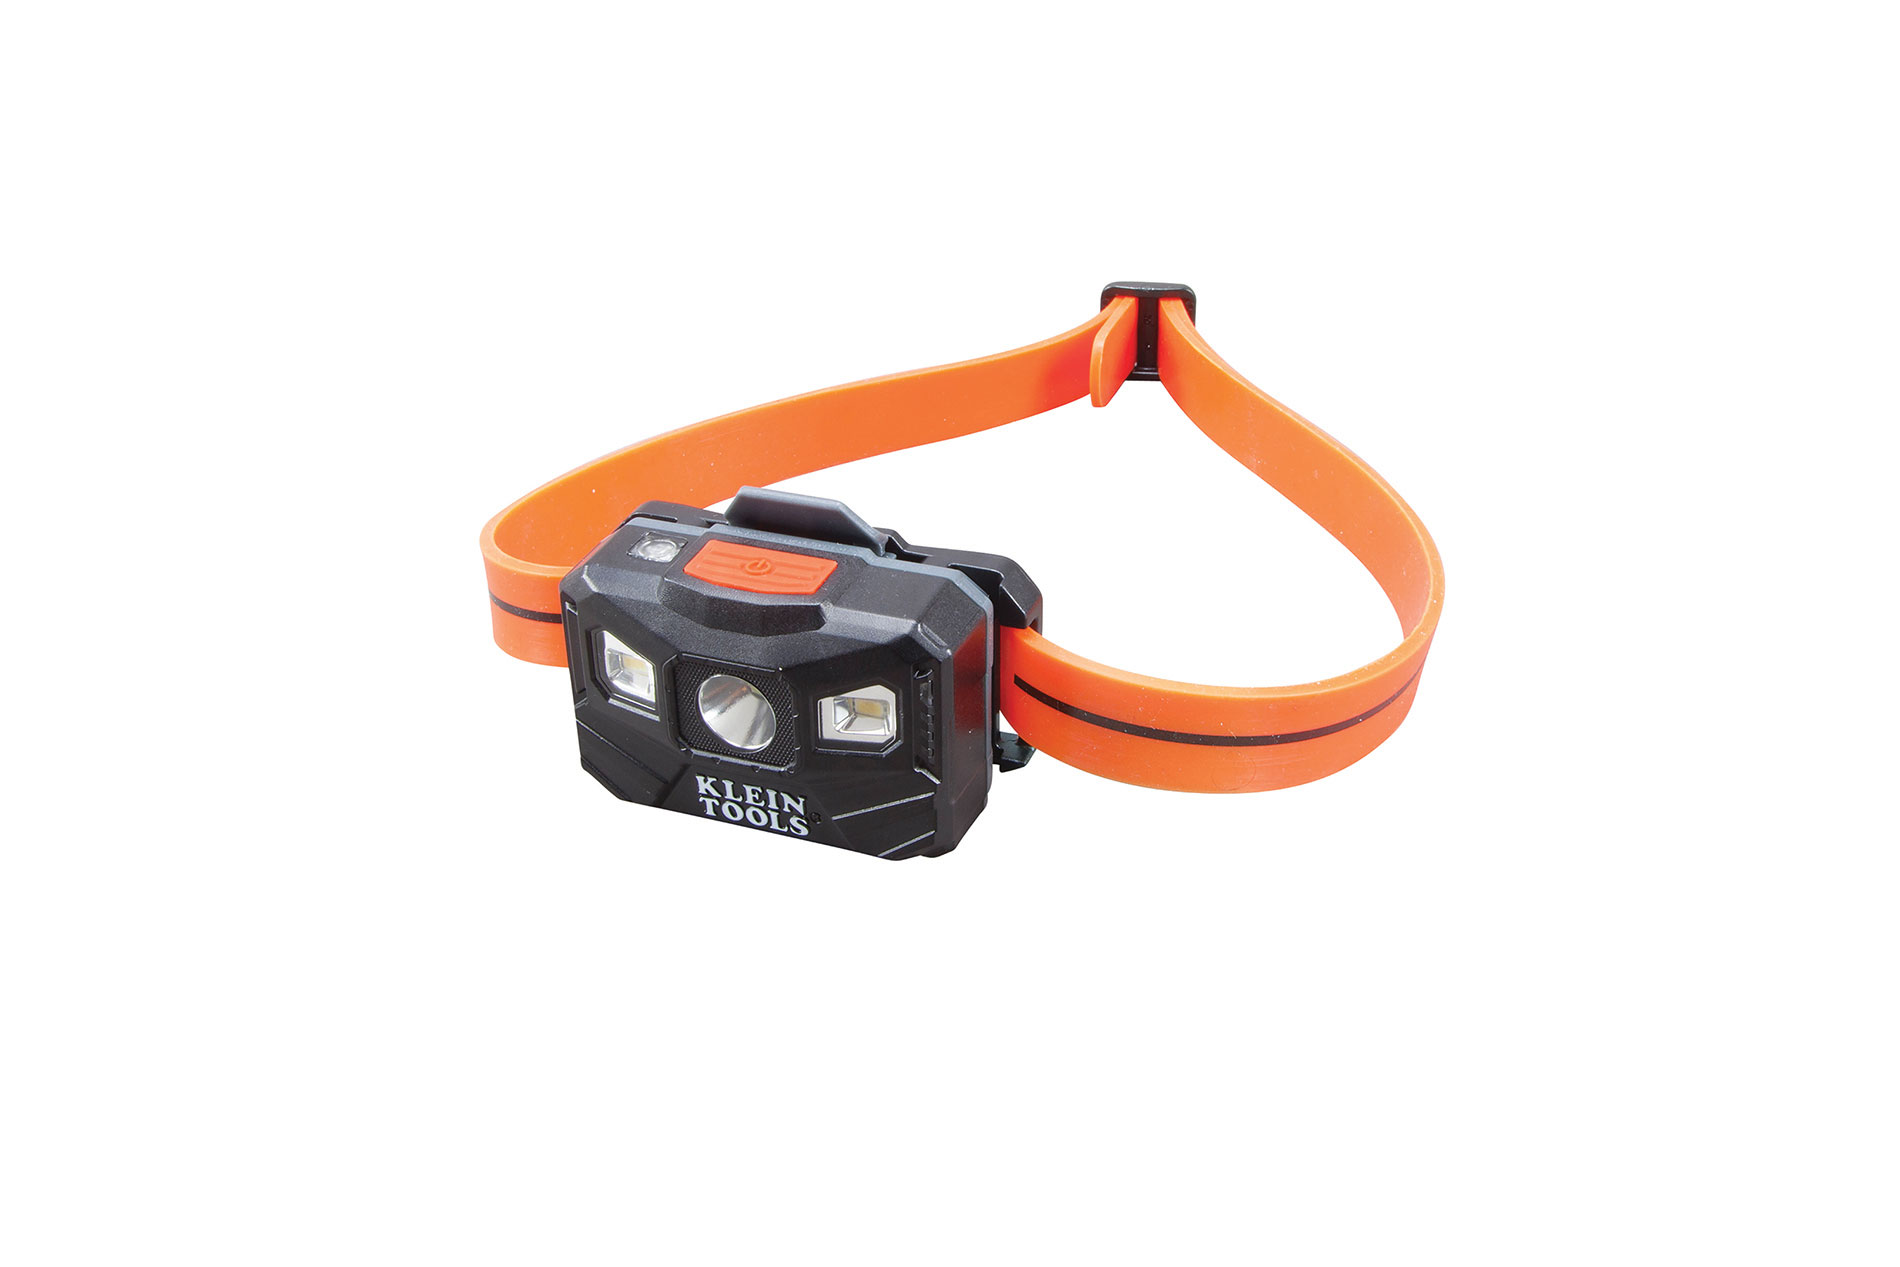 Klein Tools' Head Lamp